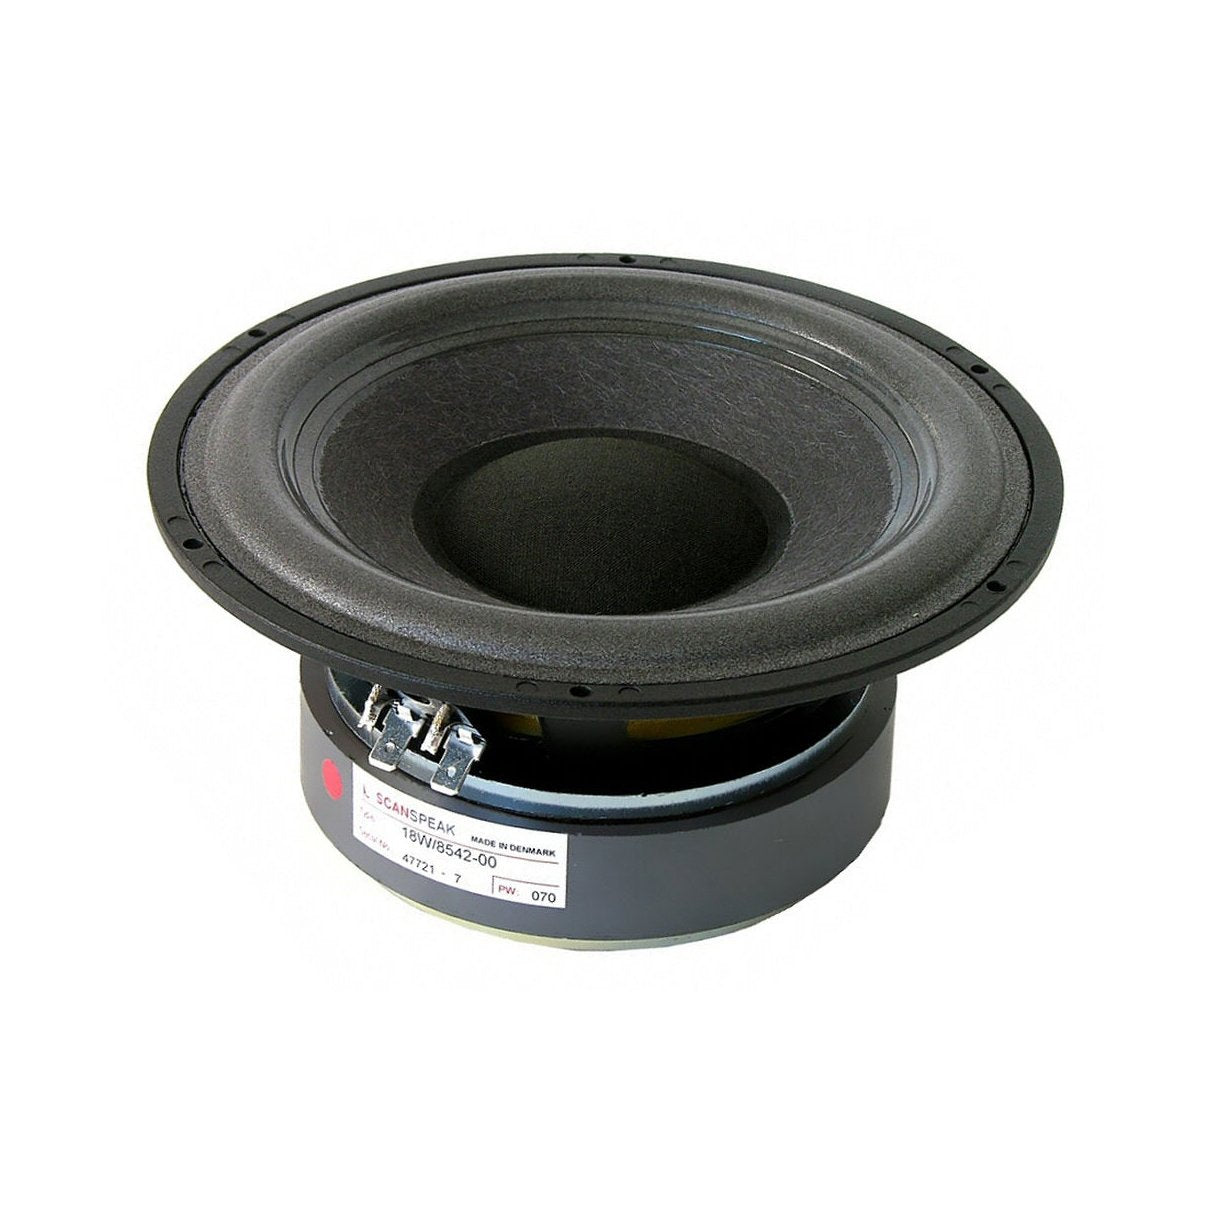 Scanspeak 18W/8542-00 Midwoofer - Classic Range - Willys-Hifi Ltd